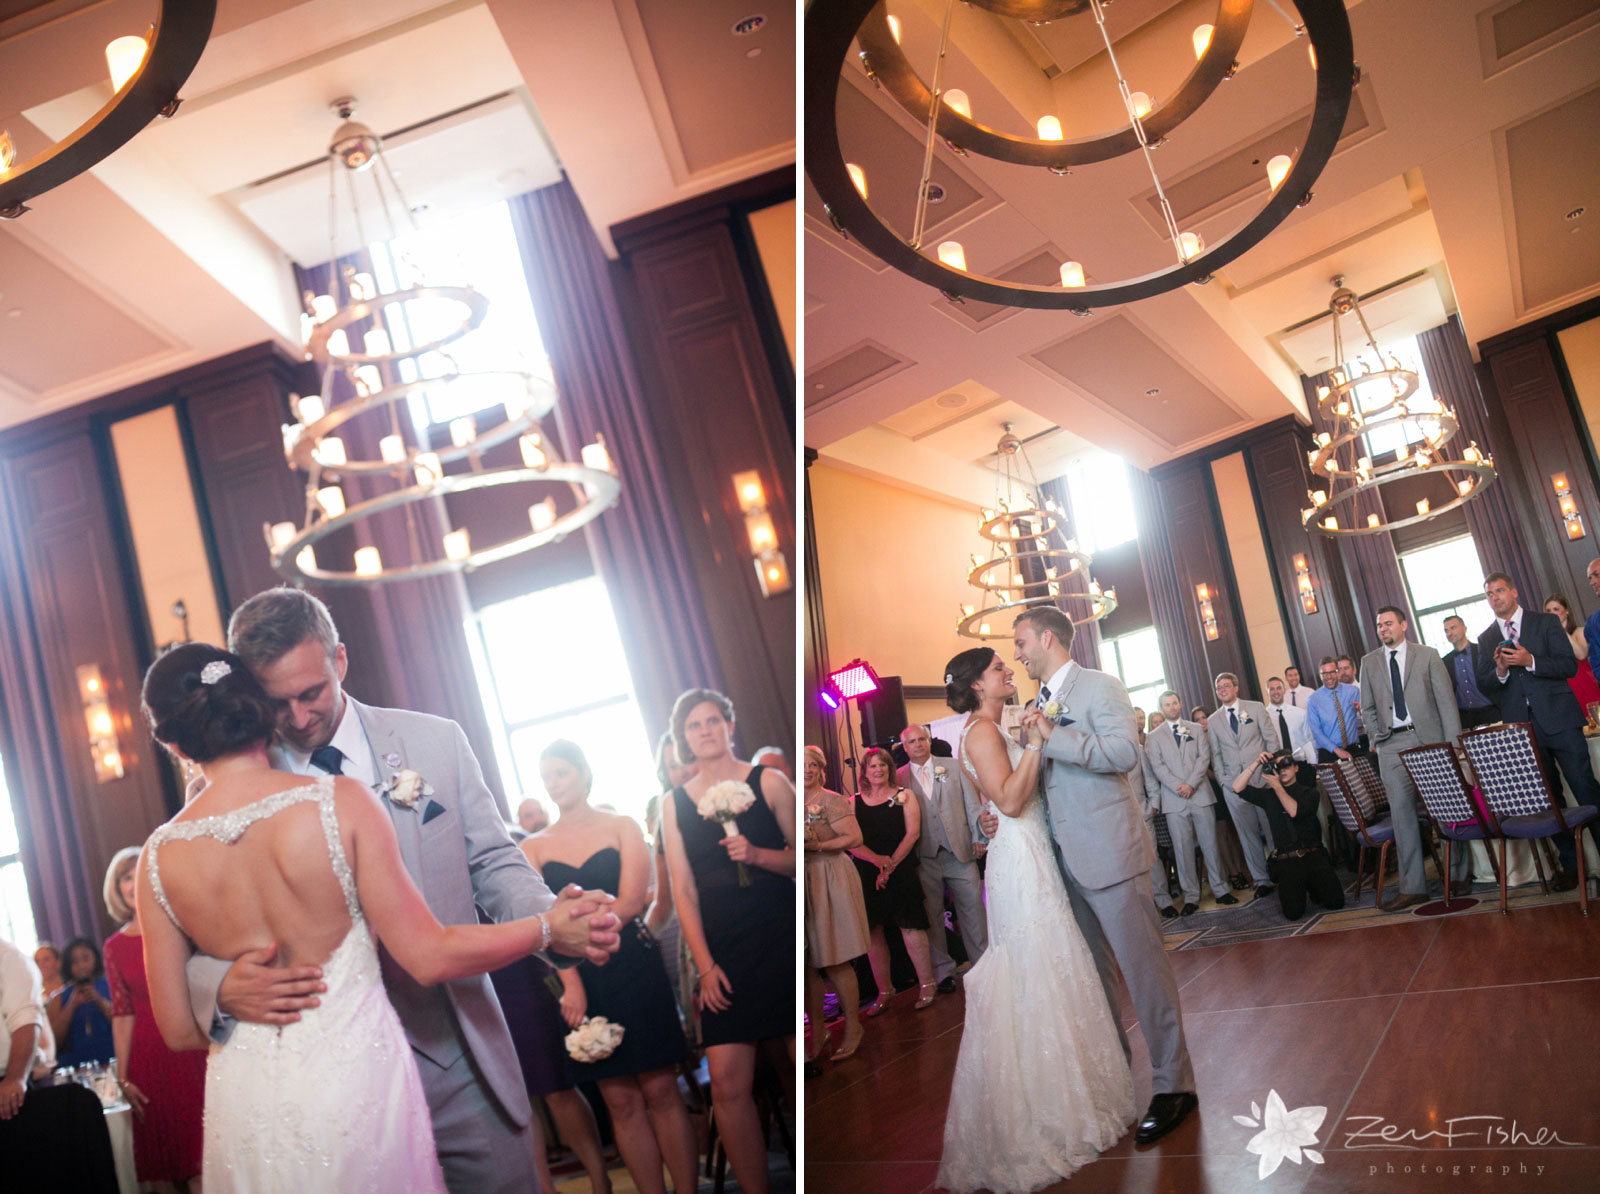 Liberty Hotel Boston wedding, Boston wedding photography, bride and groom first dance